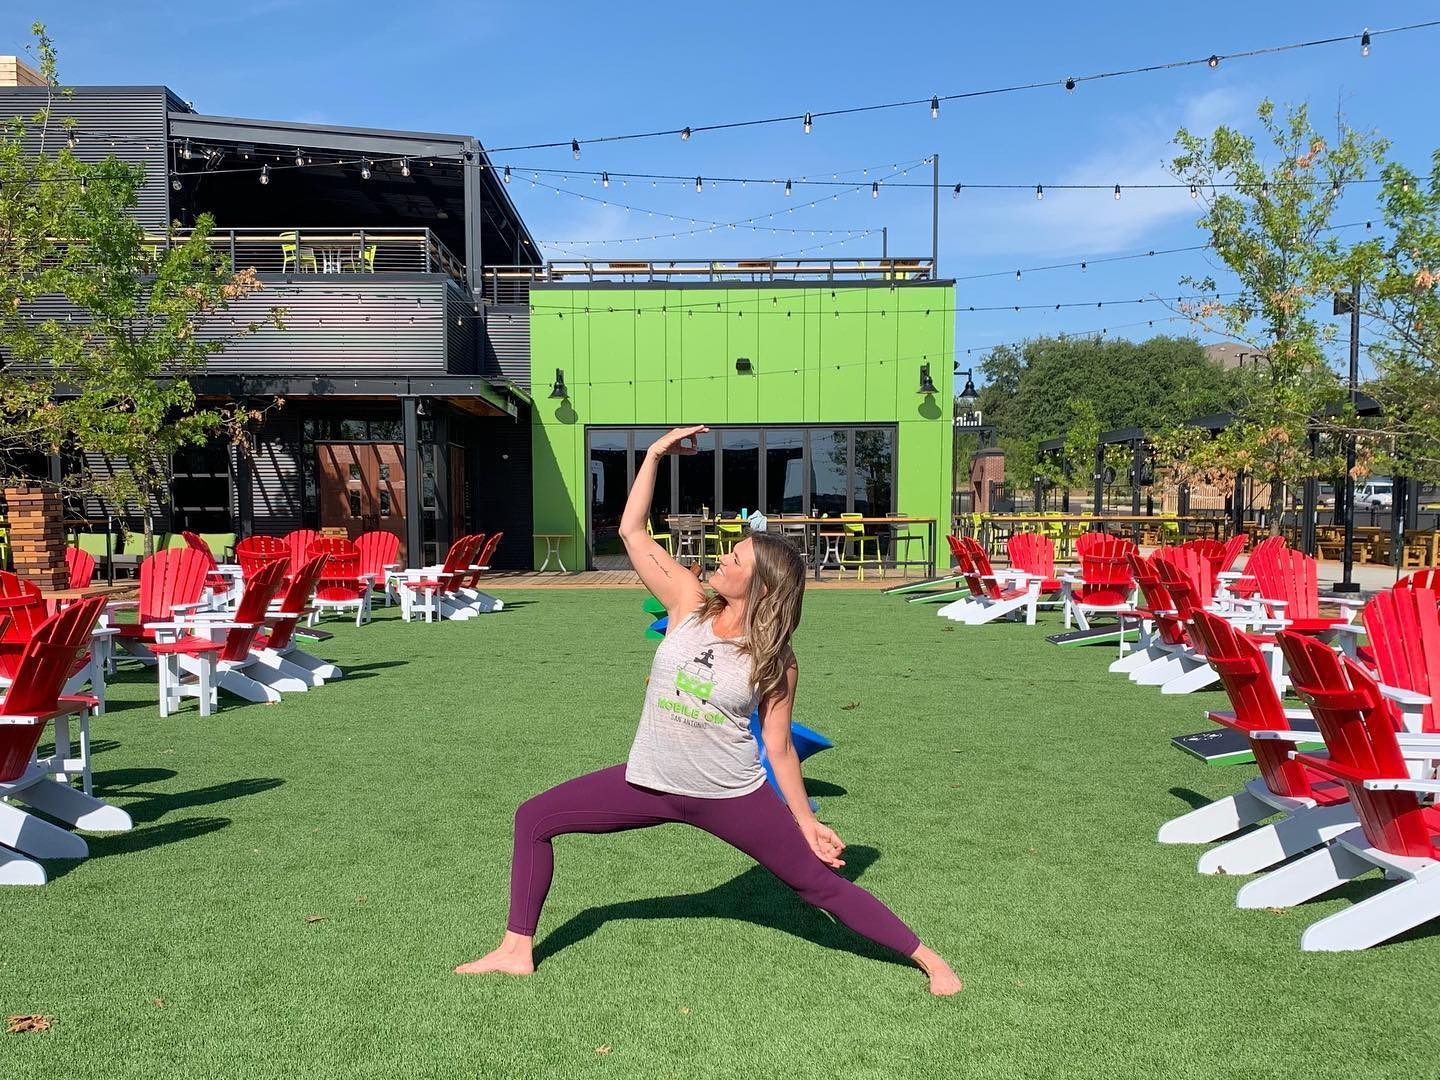 Three Ways To Get Your Yoga On In San Antonio During The Pandemic Outdoors Or Online Artslut